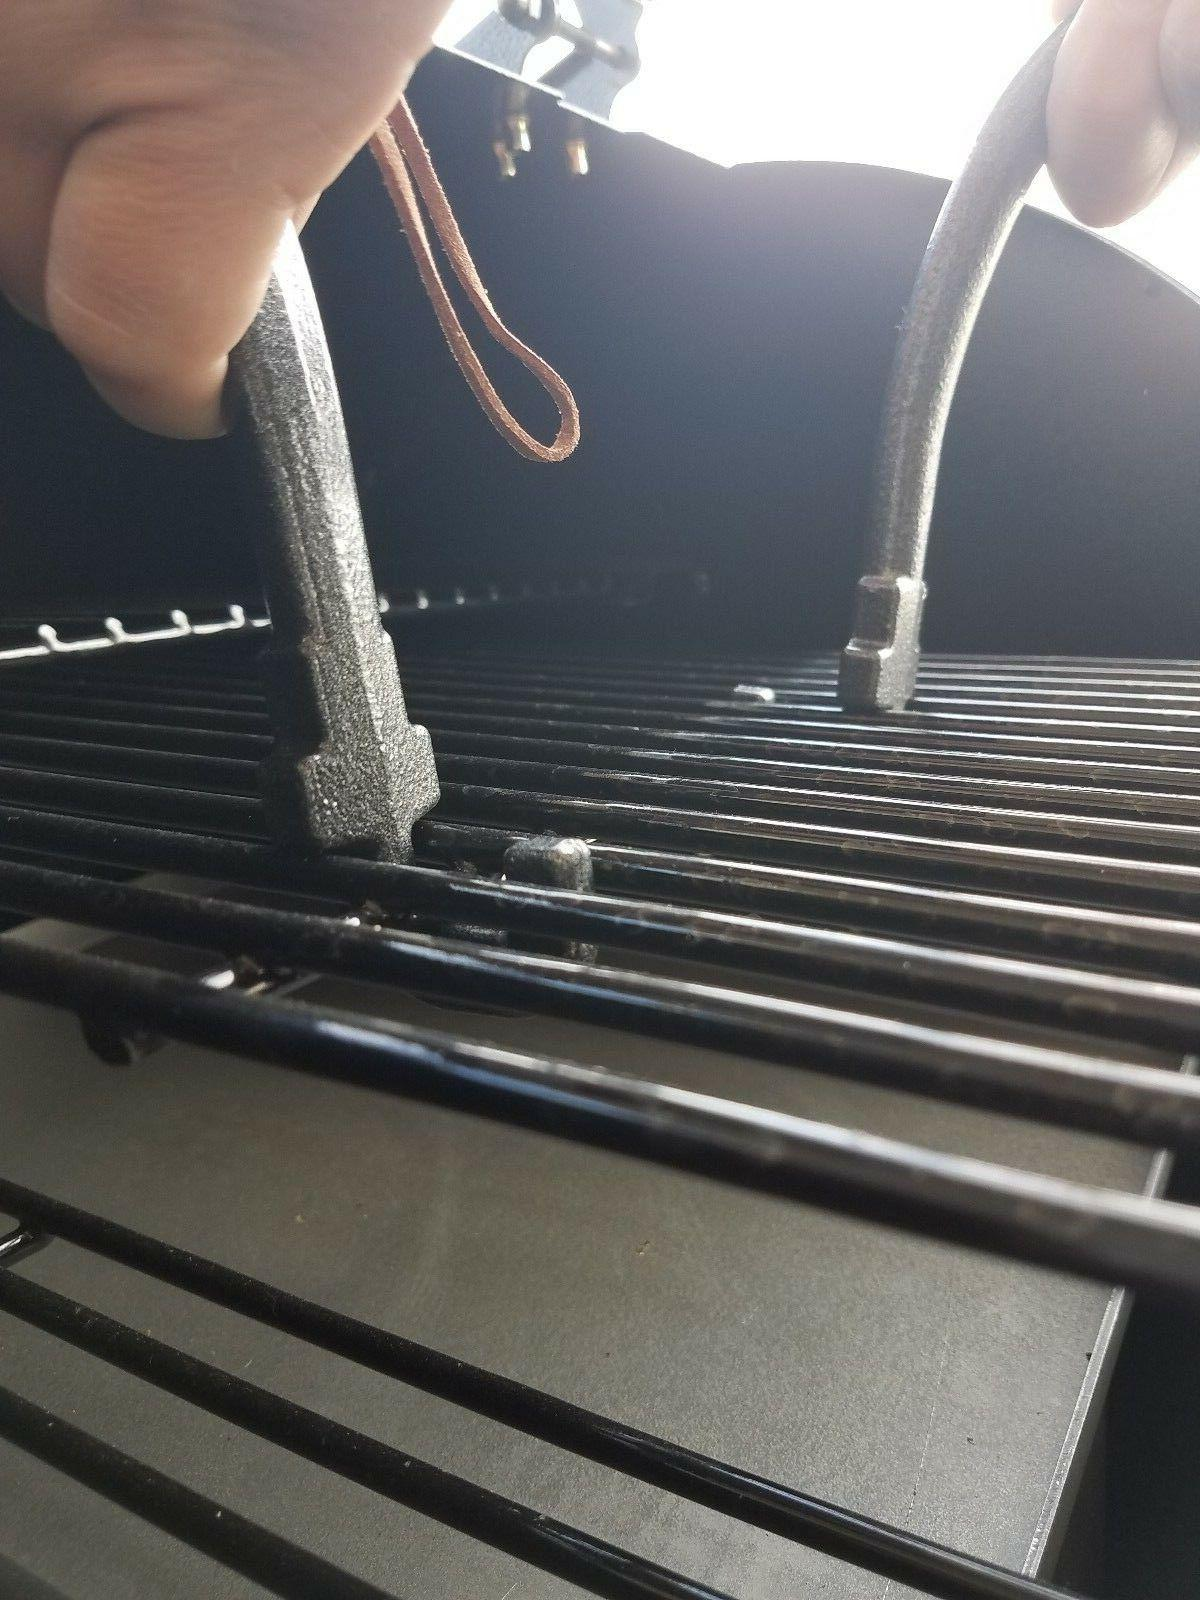 2 BBQ LIFTERS- LIFTERS PELLET STOVES